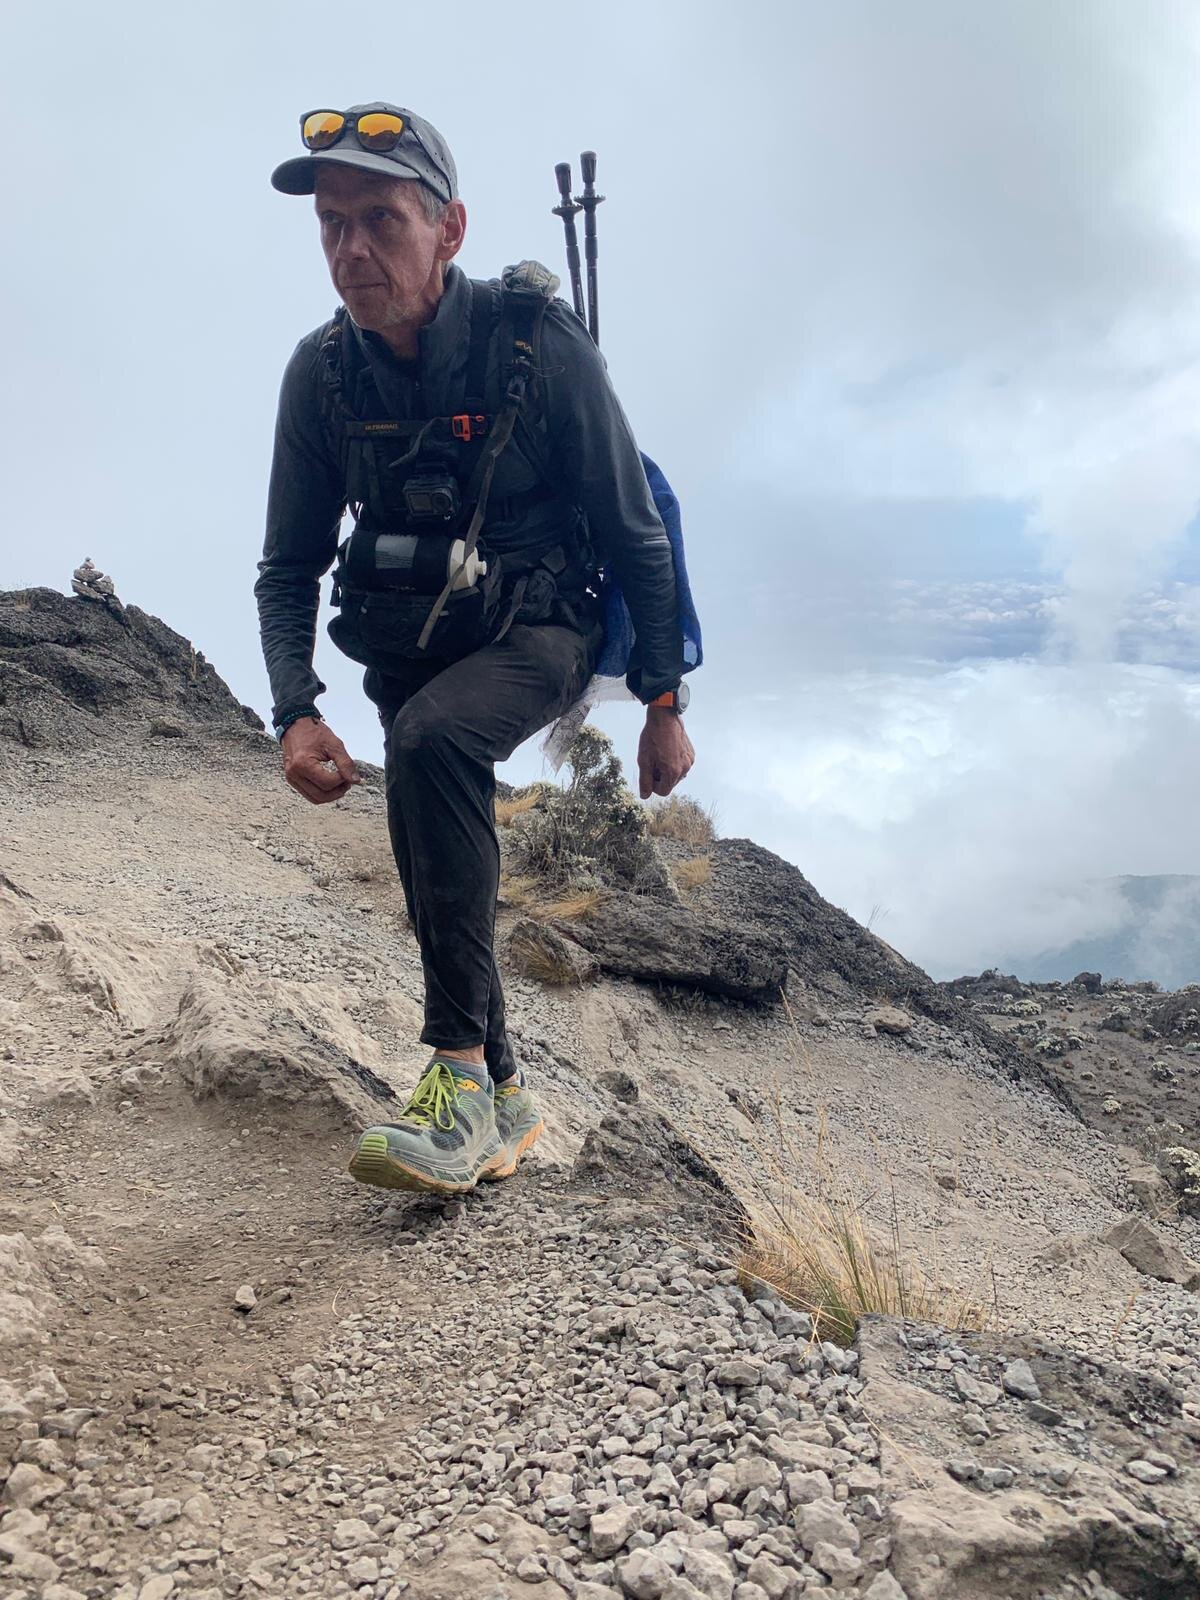 Headed closer and closer to that Kilimanjaro summit — the highest point in Africa!